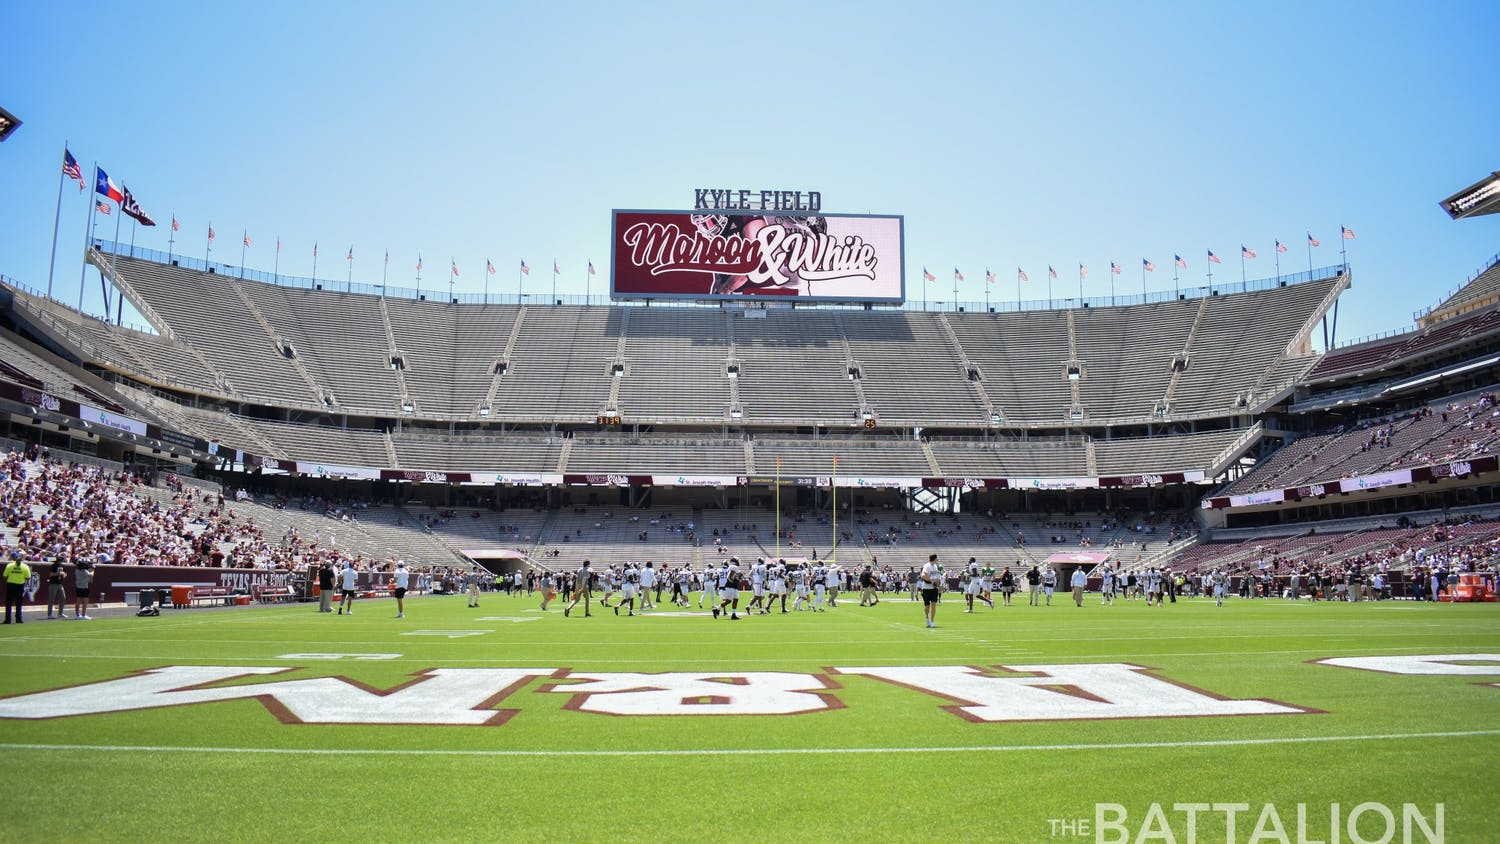 Kyle Field, located on the campus of the Texas A&M University in College Station, Texas, is home to the Texas A&M Aggies football team.